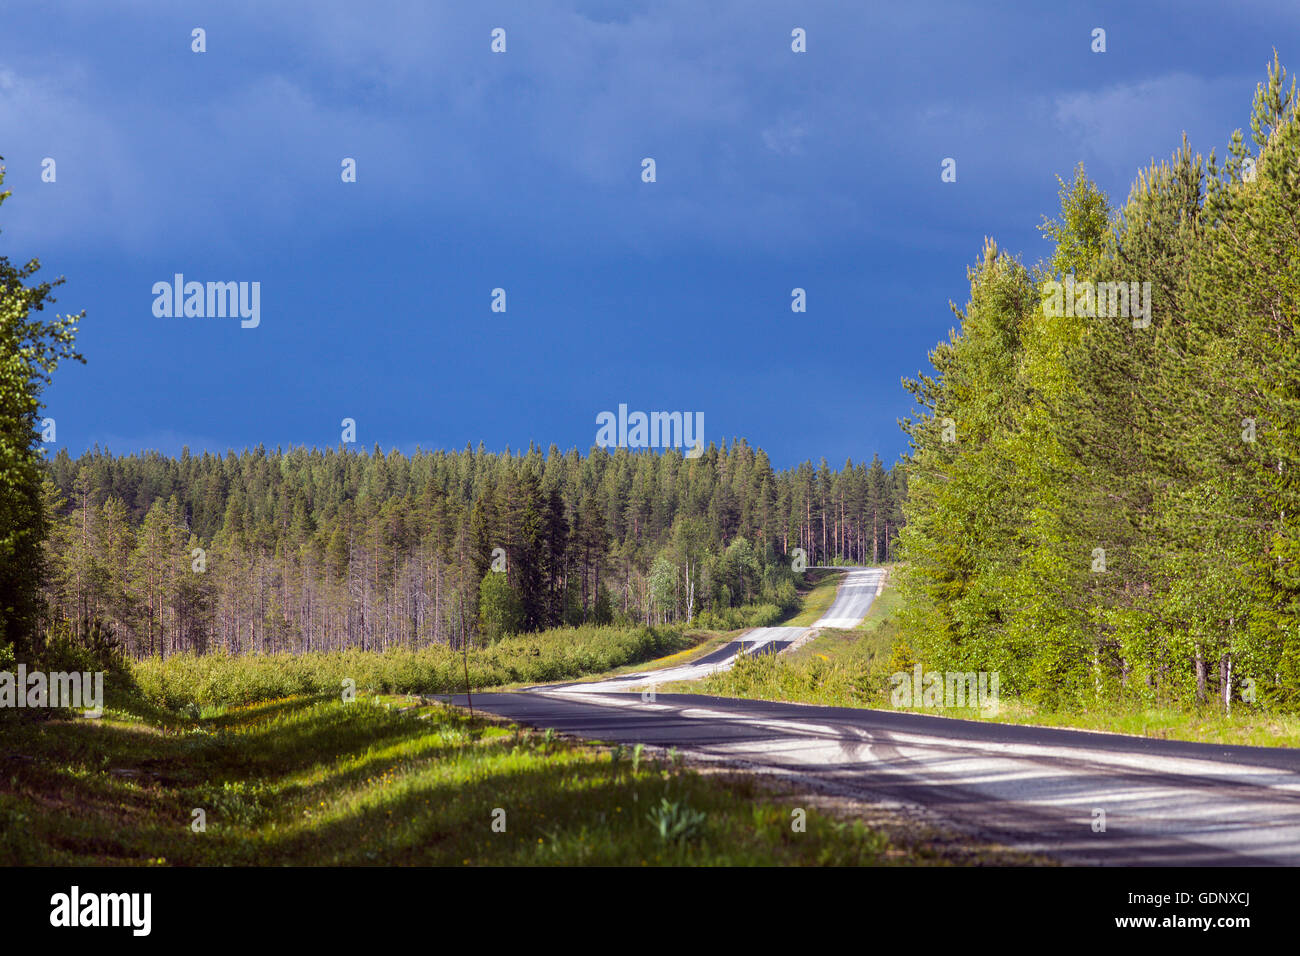 Country road in rural countryside. Heavy showers in the background. - Stock Image